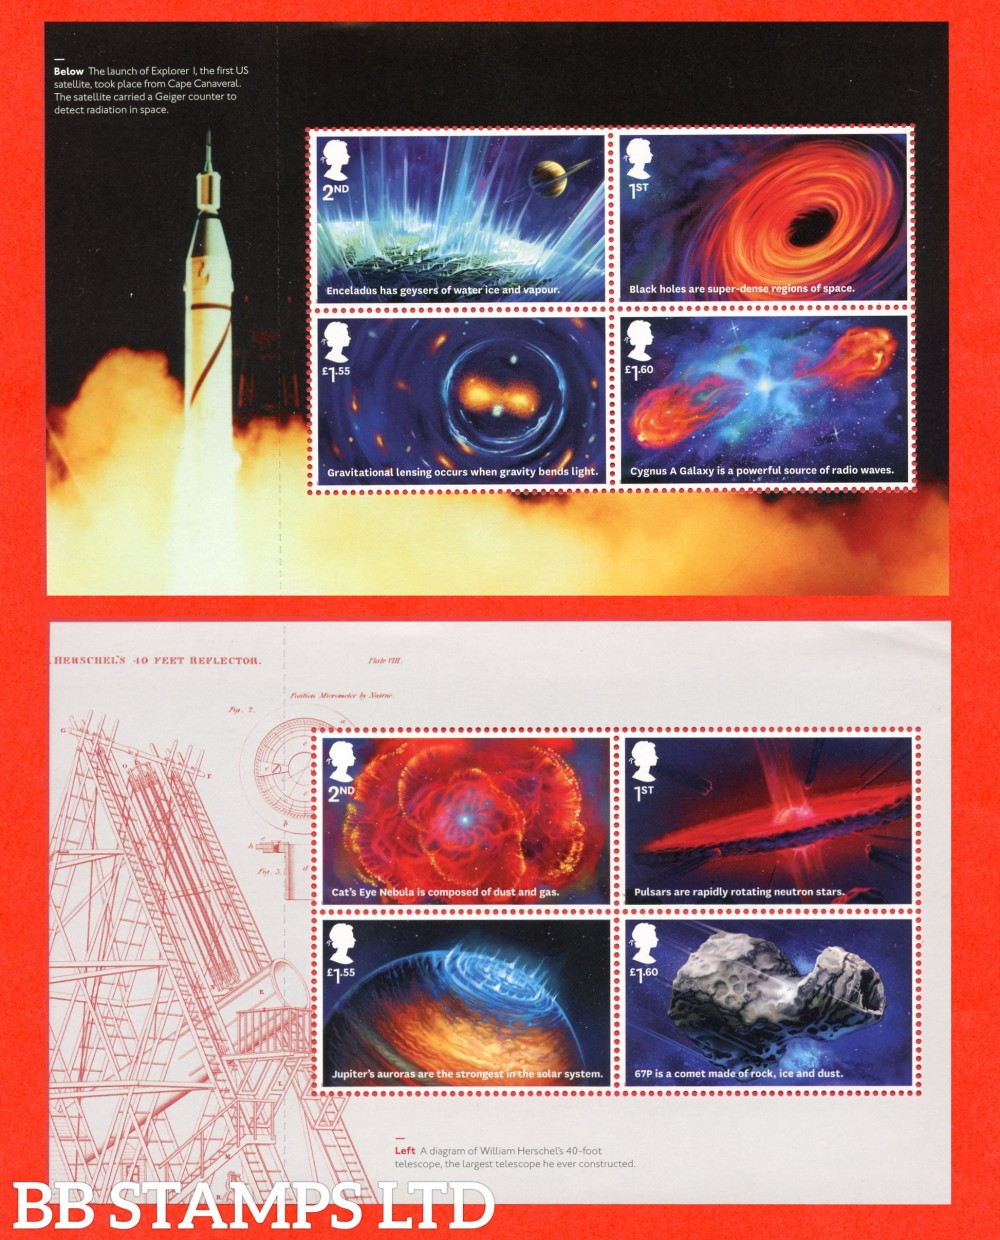 2020 Visions of the Universe (2nd Issue) Pane 1&3 from DY32